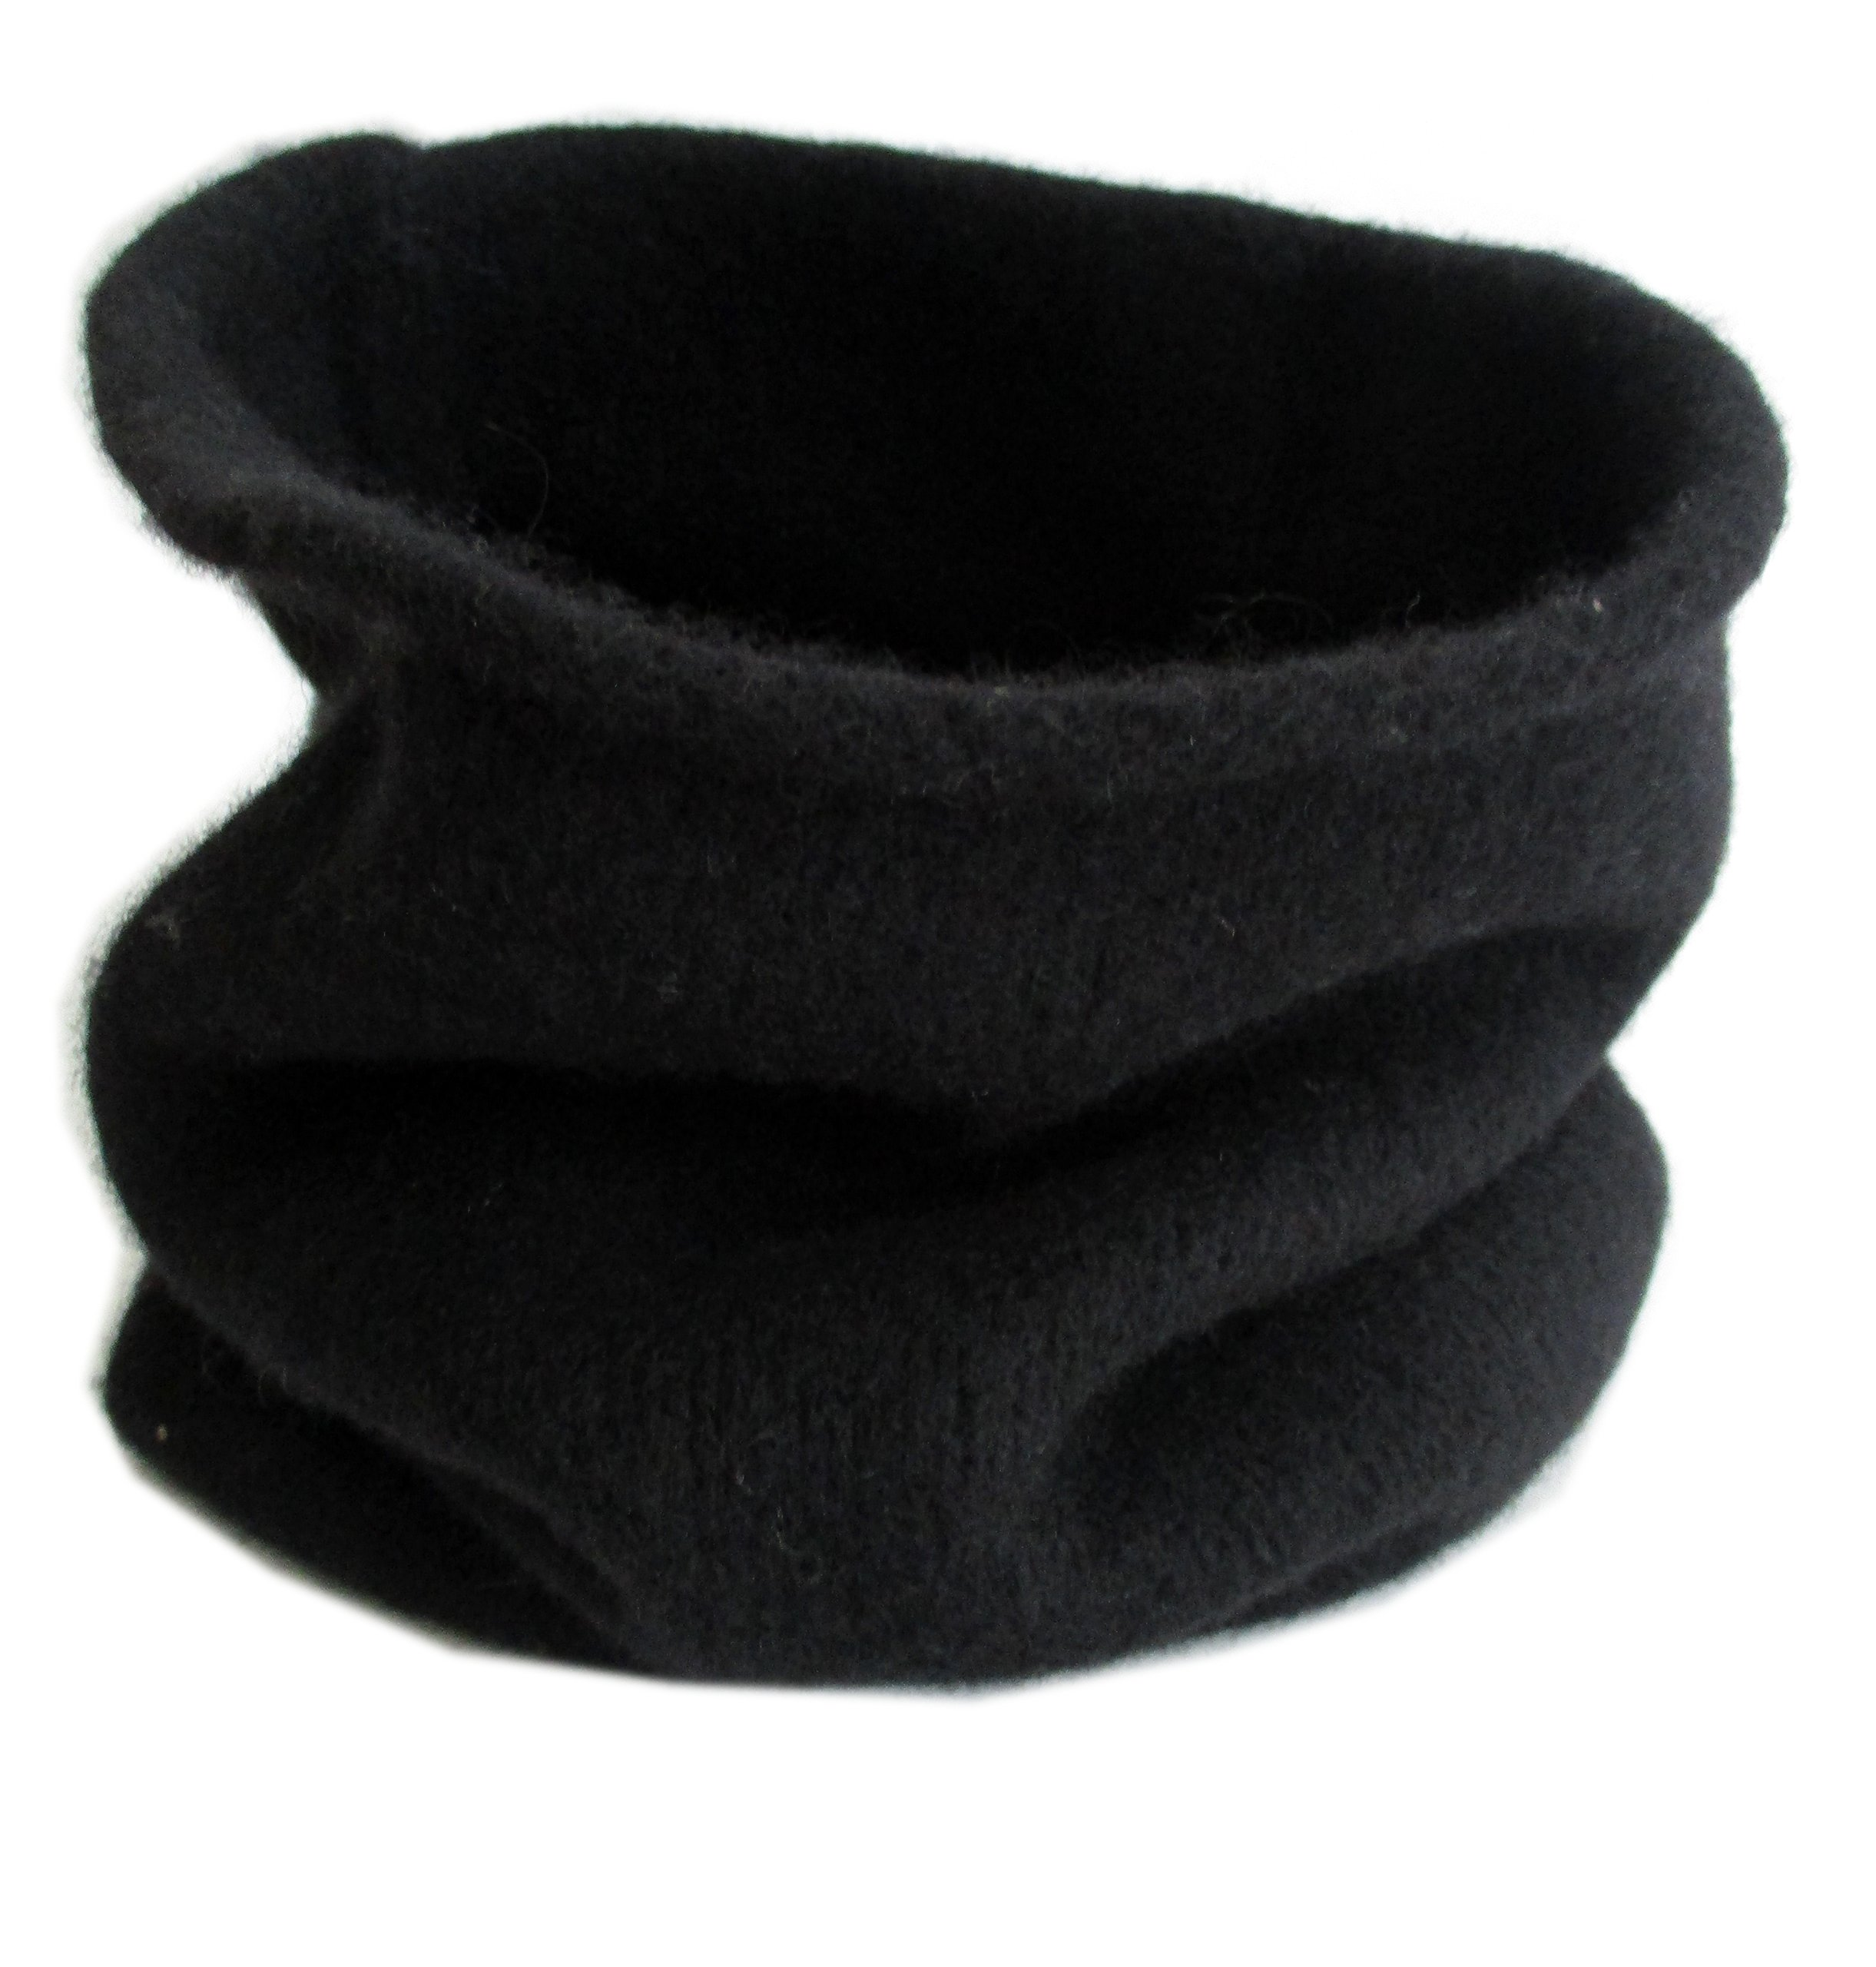 Frost Hats Cashmere Neck Warmer CSH-891 (Black) by Frost Hats (Image #1)